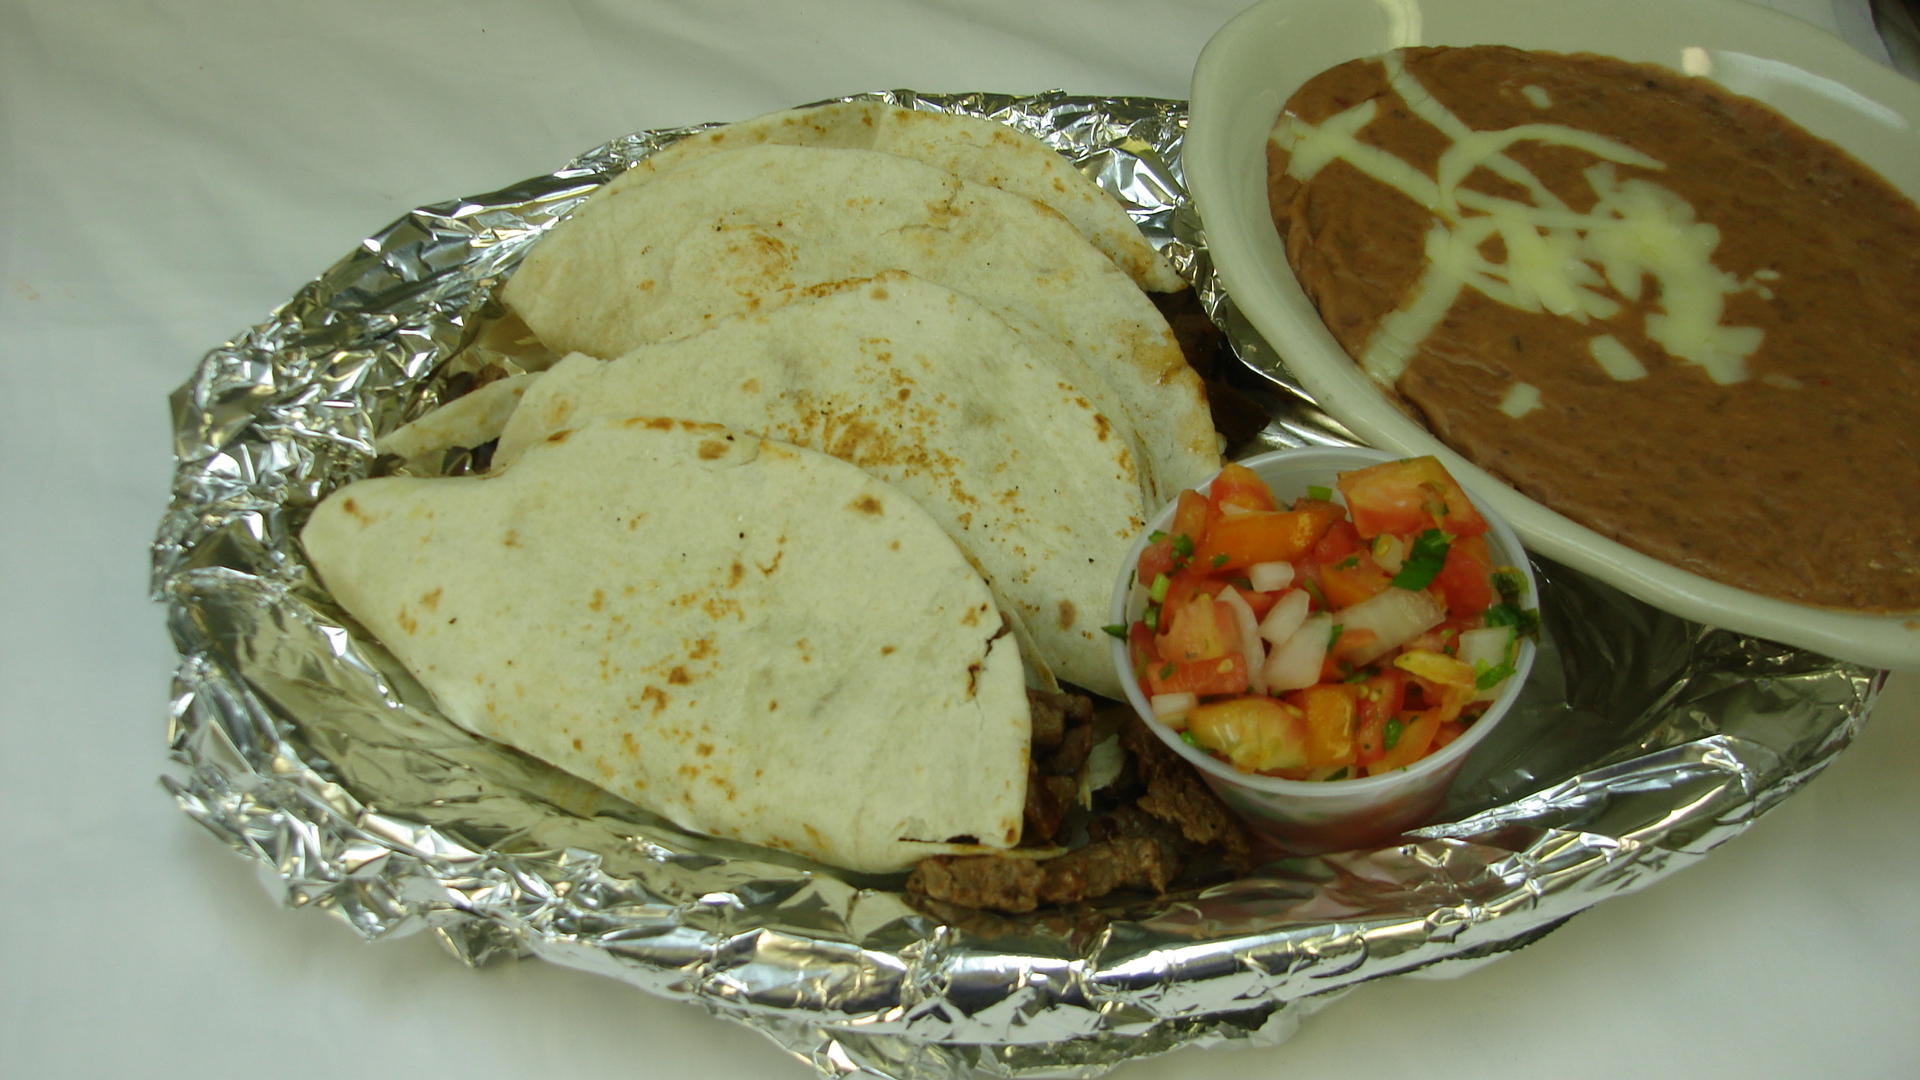 Tacos de Carne Asada - Three flour tortillas stuffed with grilled steak. Served with pico de gallo and beans.